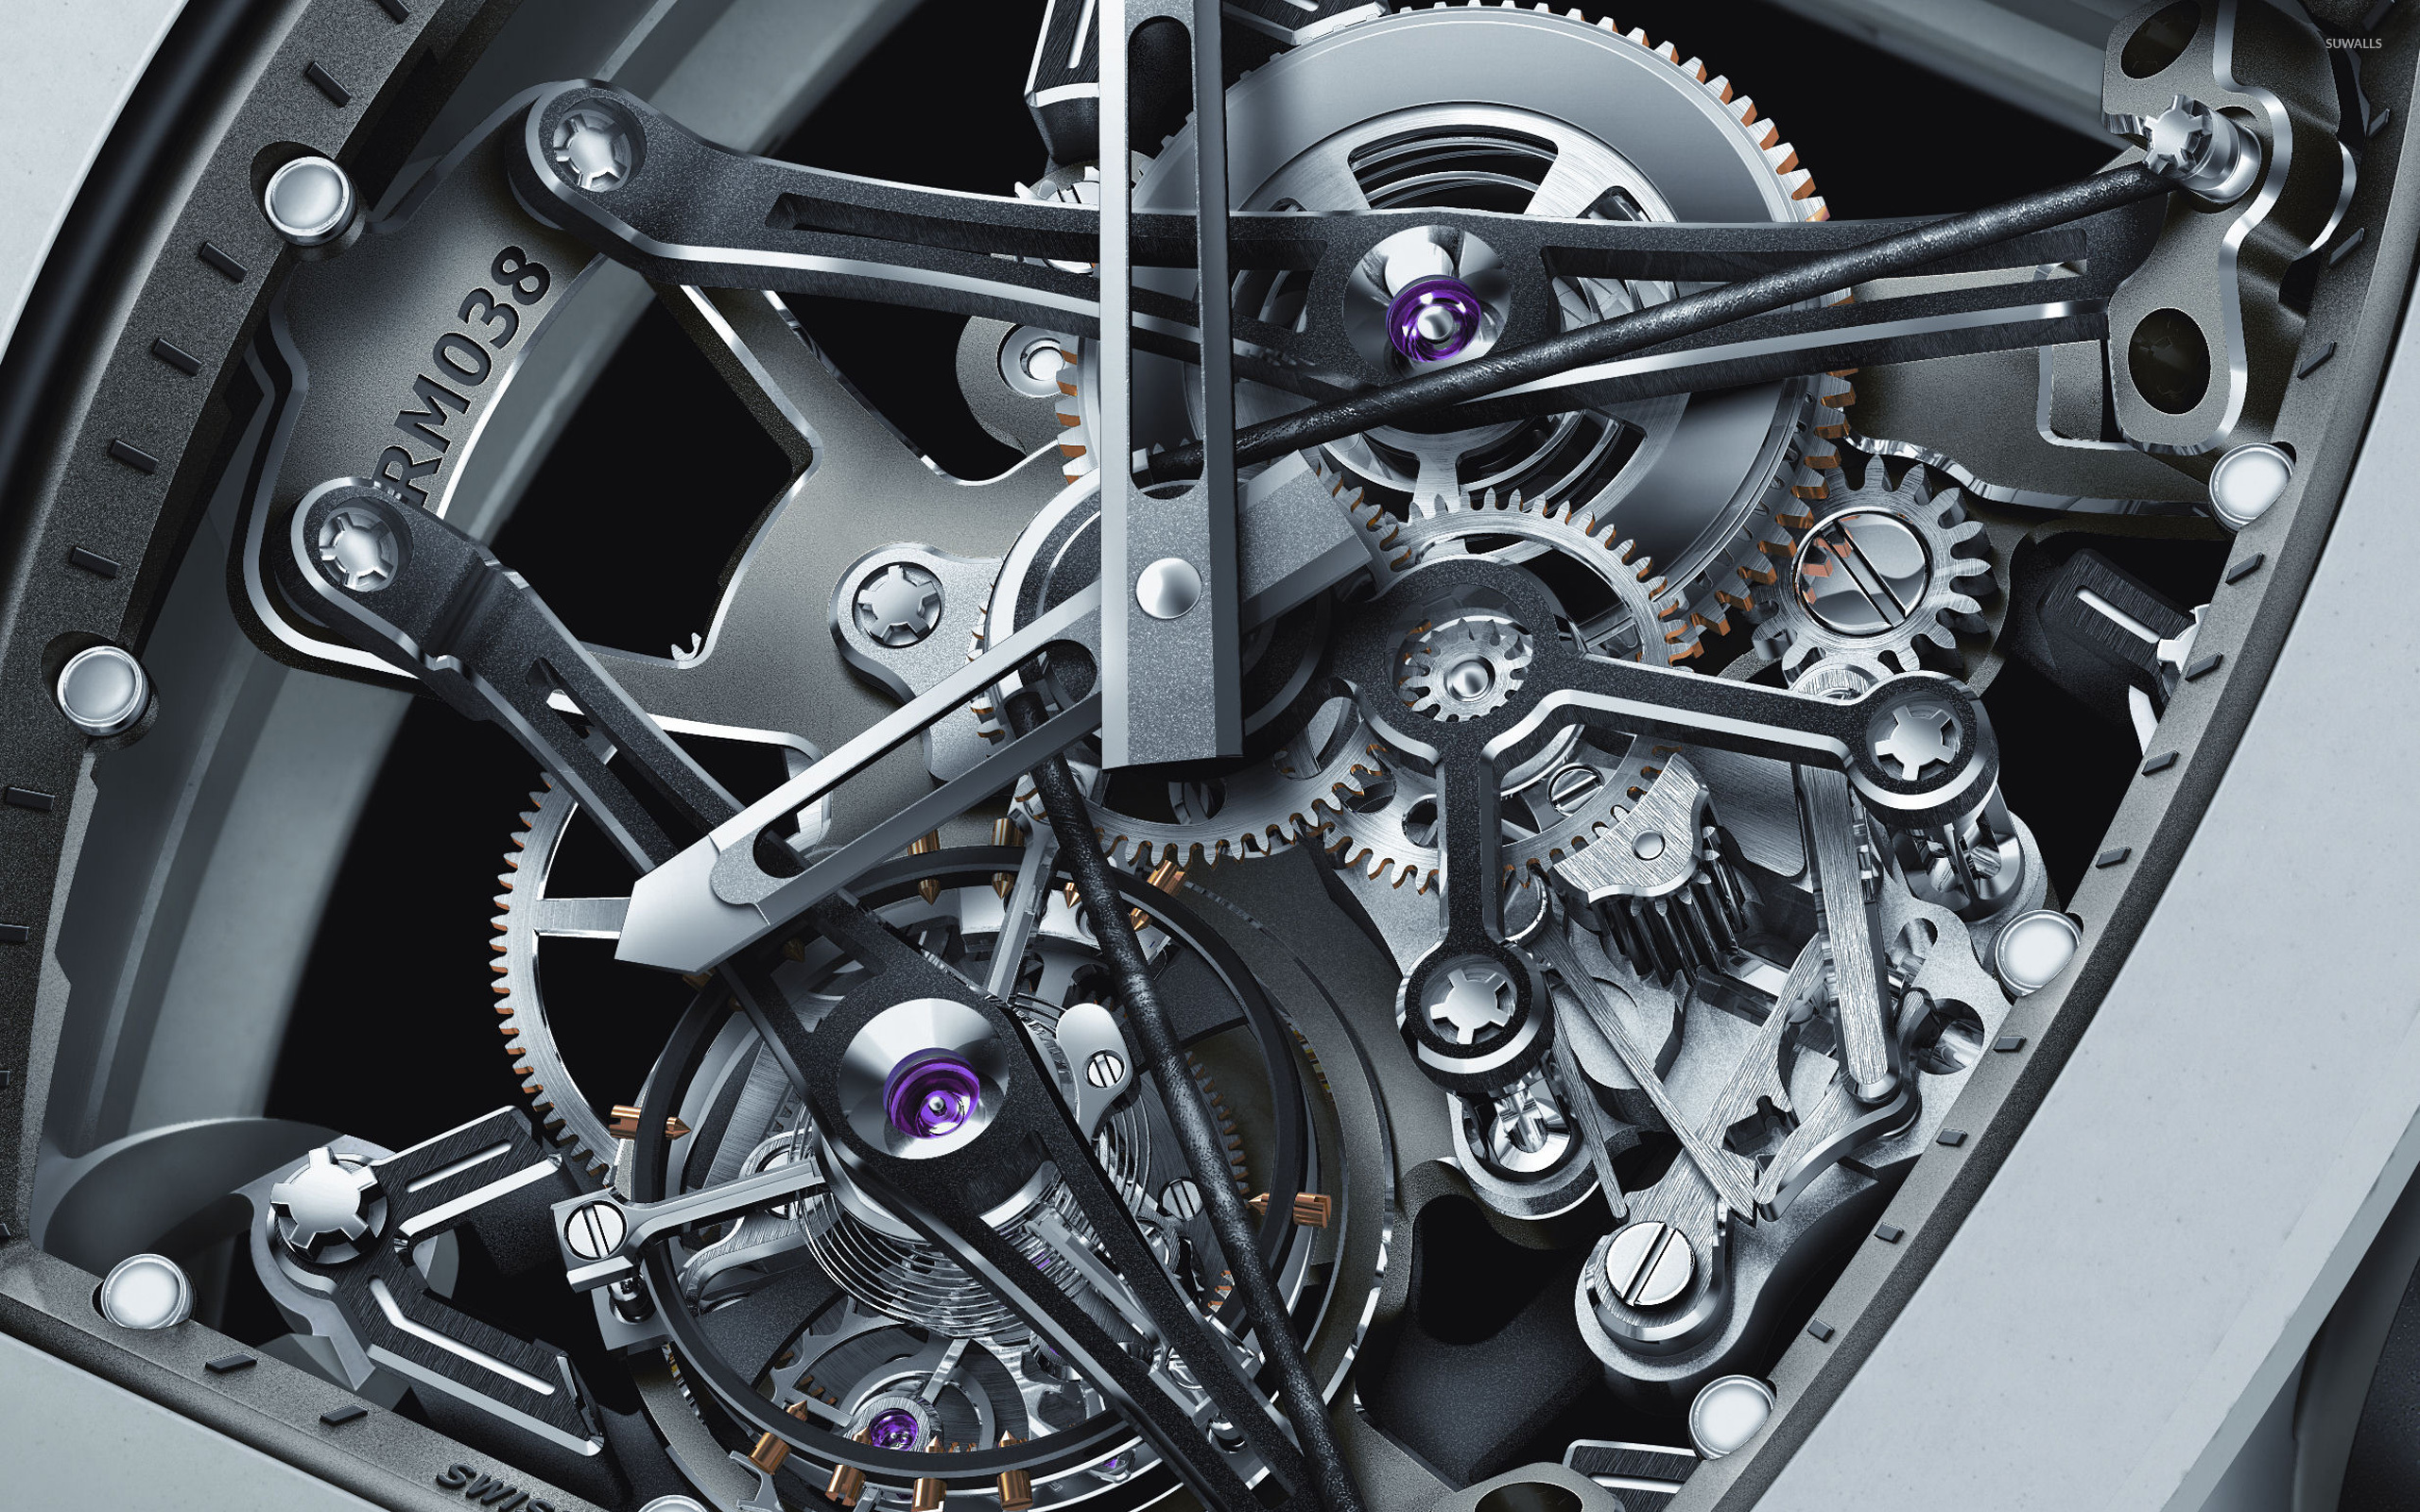 Watch mechanism wallpaper - Artistic wallpapers - #8800